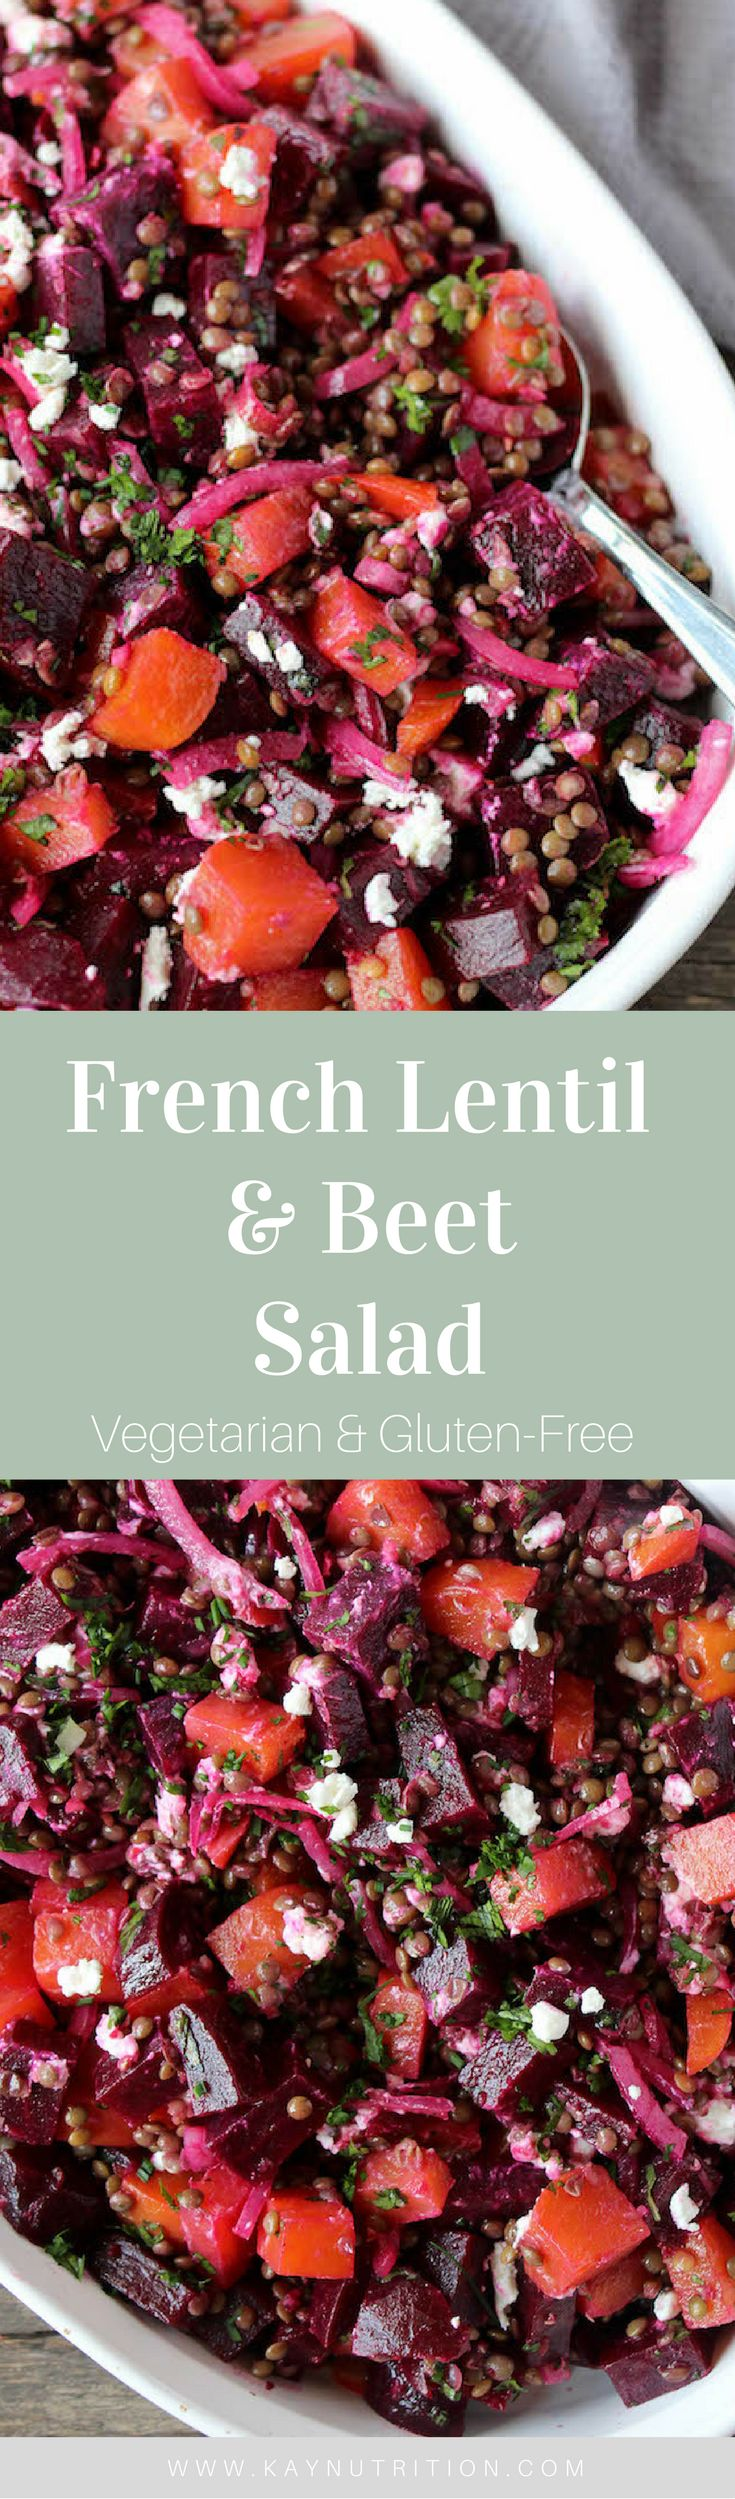 This French Lentil & Beet Salad pairs sweet, savoury and salty flavours to make an incredible salad that is perfect for any summer party of BBQ.